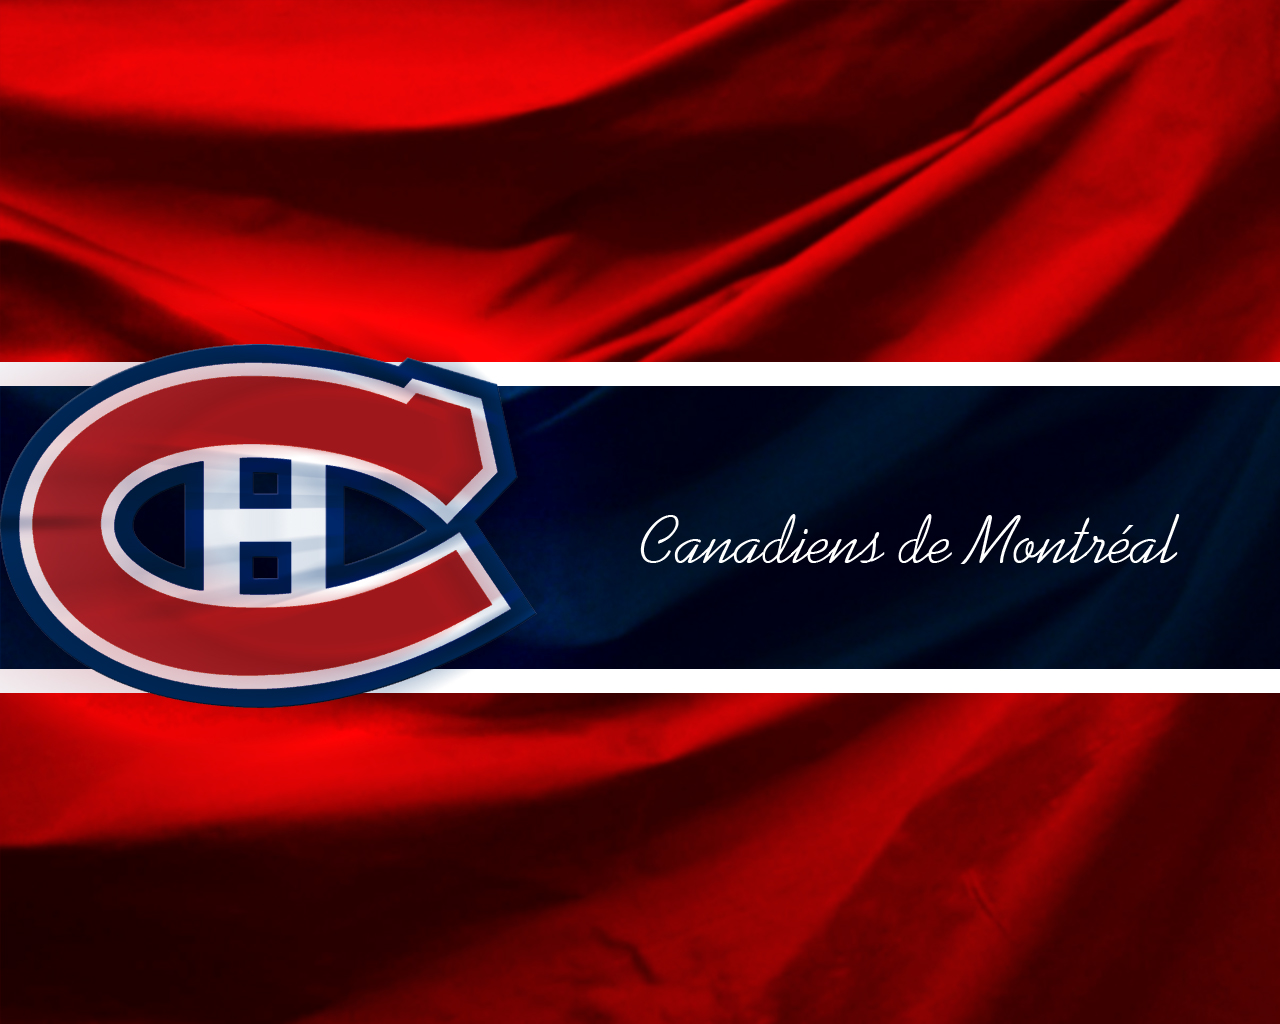 New Montreal Canadiens background Montreal Canadiens wallpapers 1280x1024